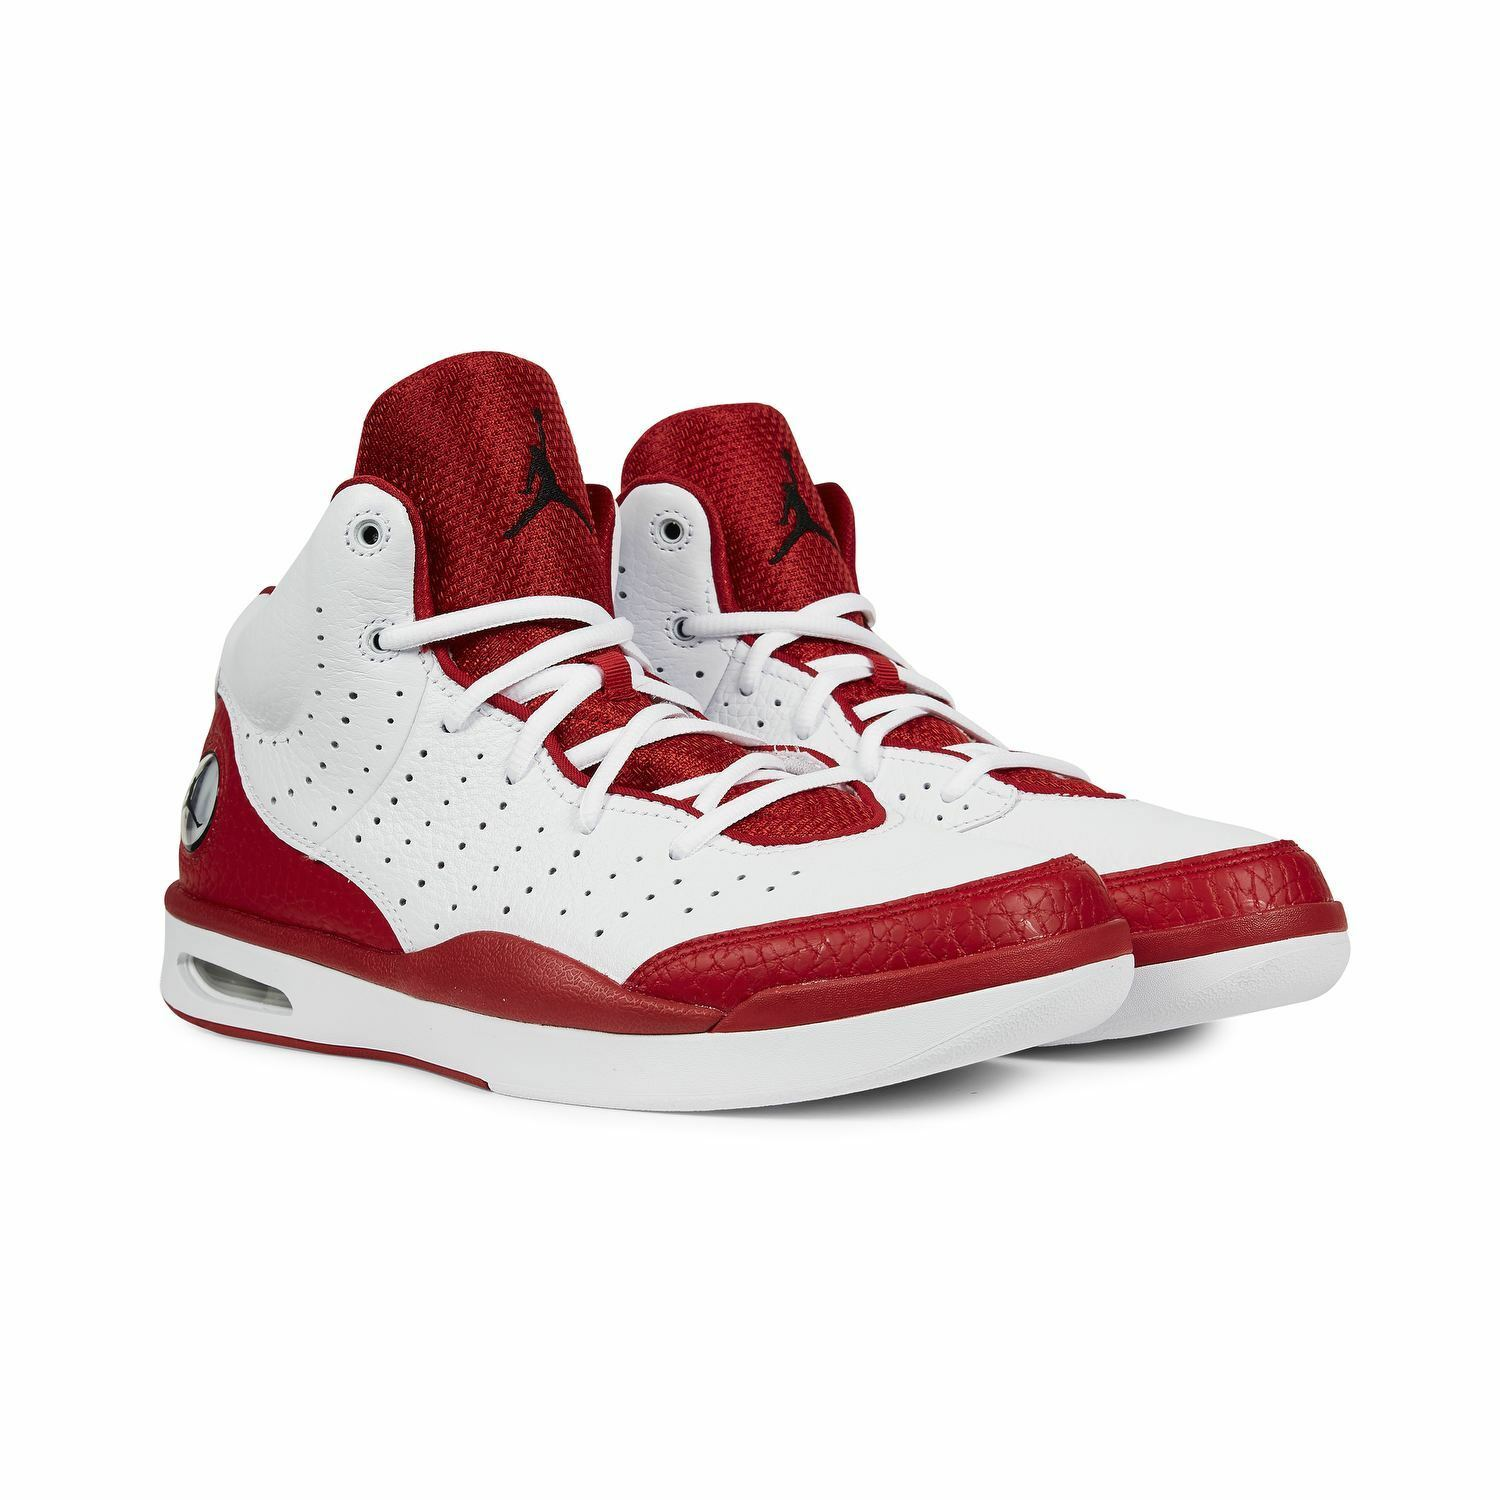 Nike Men's Jordan Flight Tradition NEW AUTHENTIC White Gym Red 819472-102